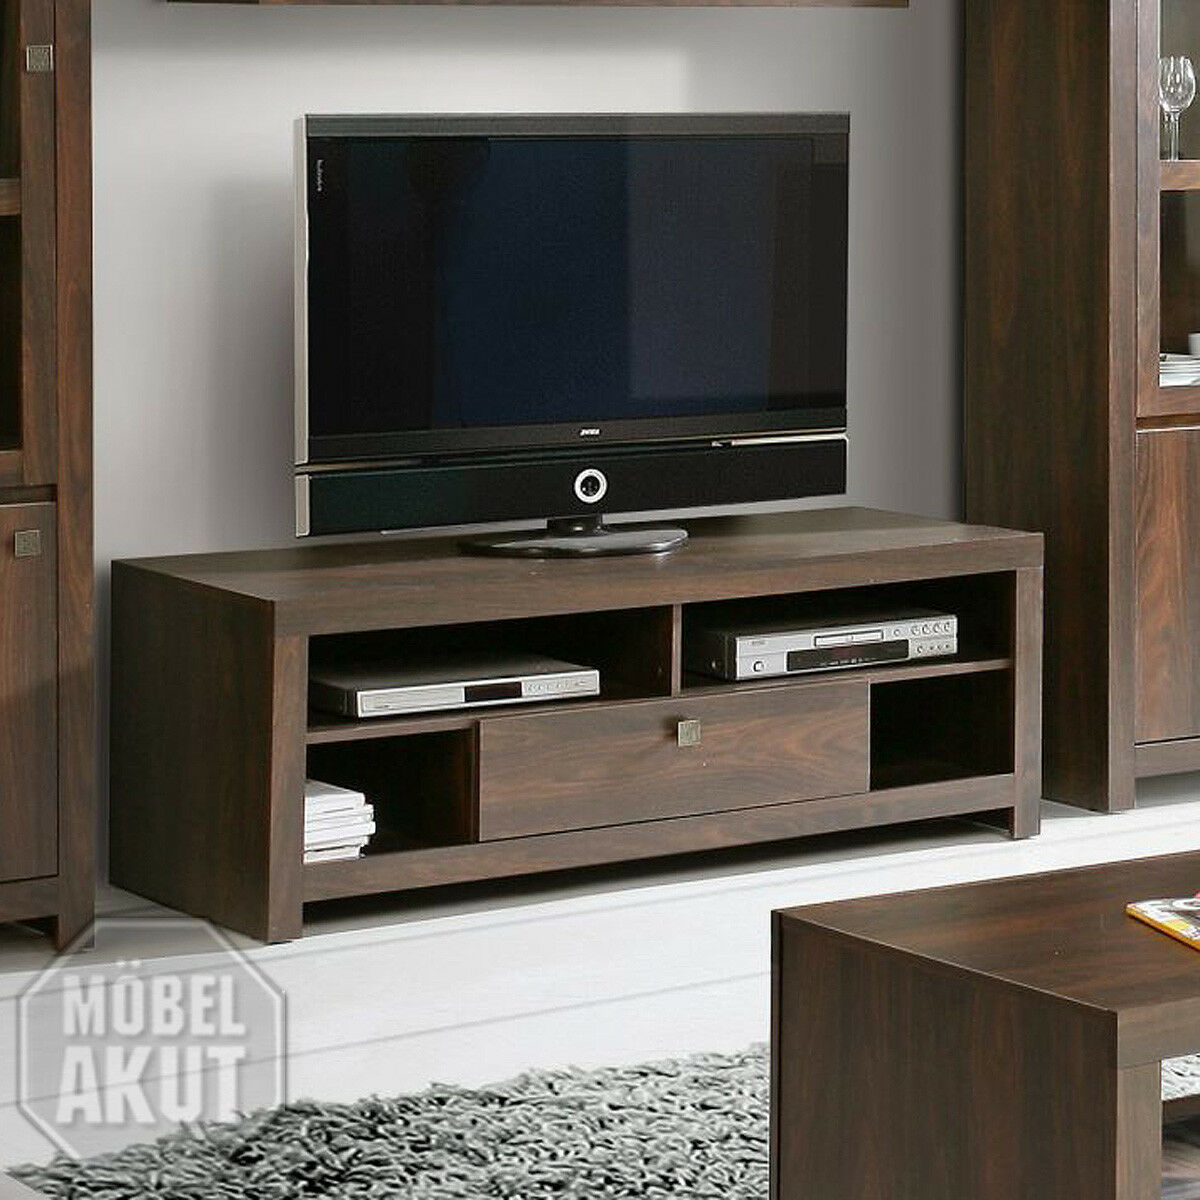 tv board indigo lowboard unterschrank in eiche durance kolonialstil eur 108 95 picclick de. Black Bedroom Furniture Sets. Home Design Ideas